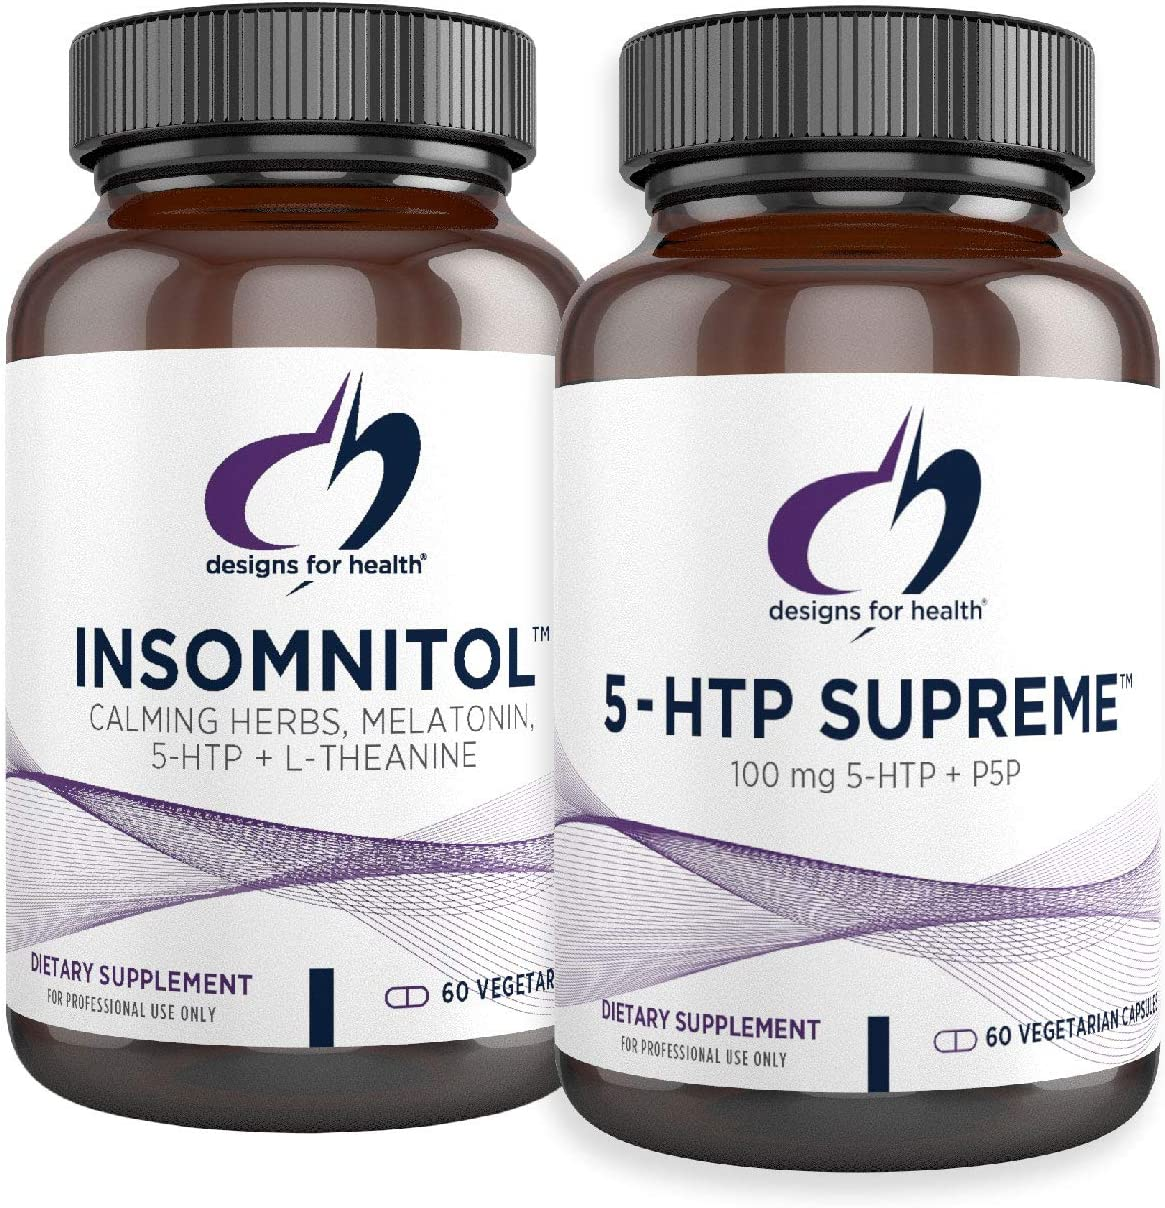 Designs for Health 5-HTP + Insomnitol Duo - Sleep and Mood Support Supplements, Includes Valerian, Melatonin, and L-Theanine (2 Product Set)